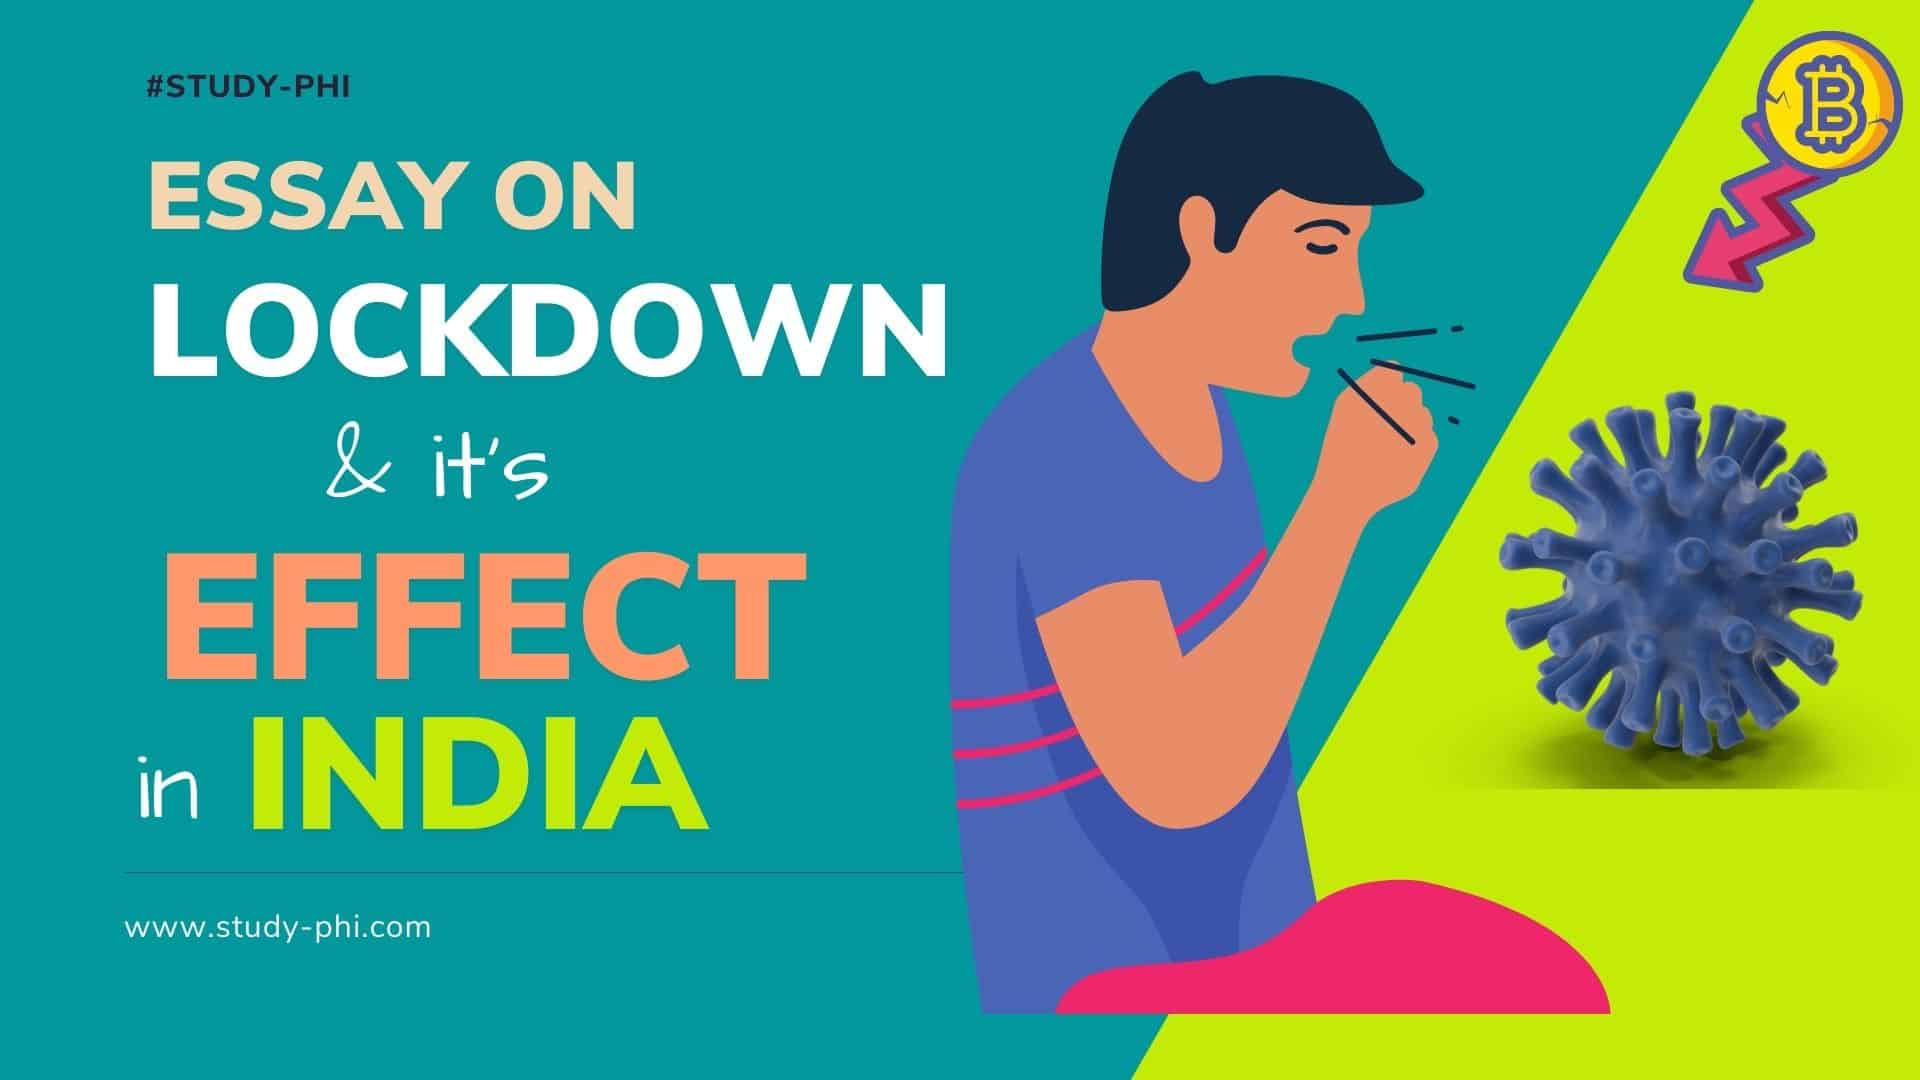 Essay on Lockdown its effect in India